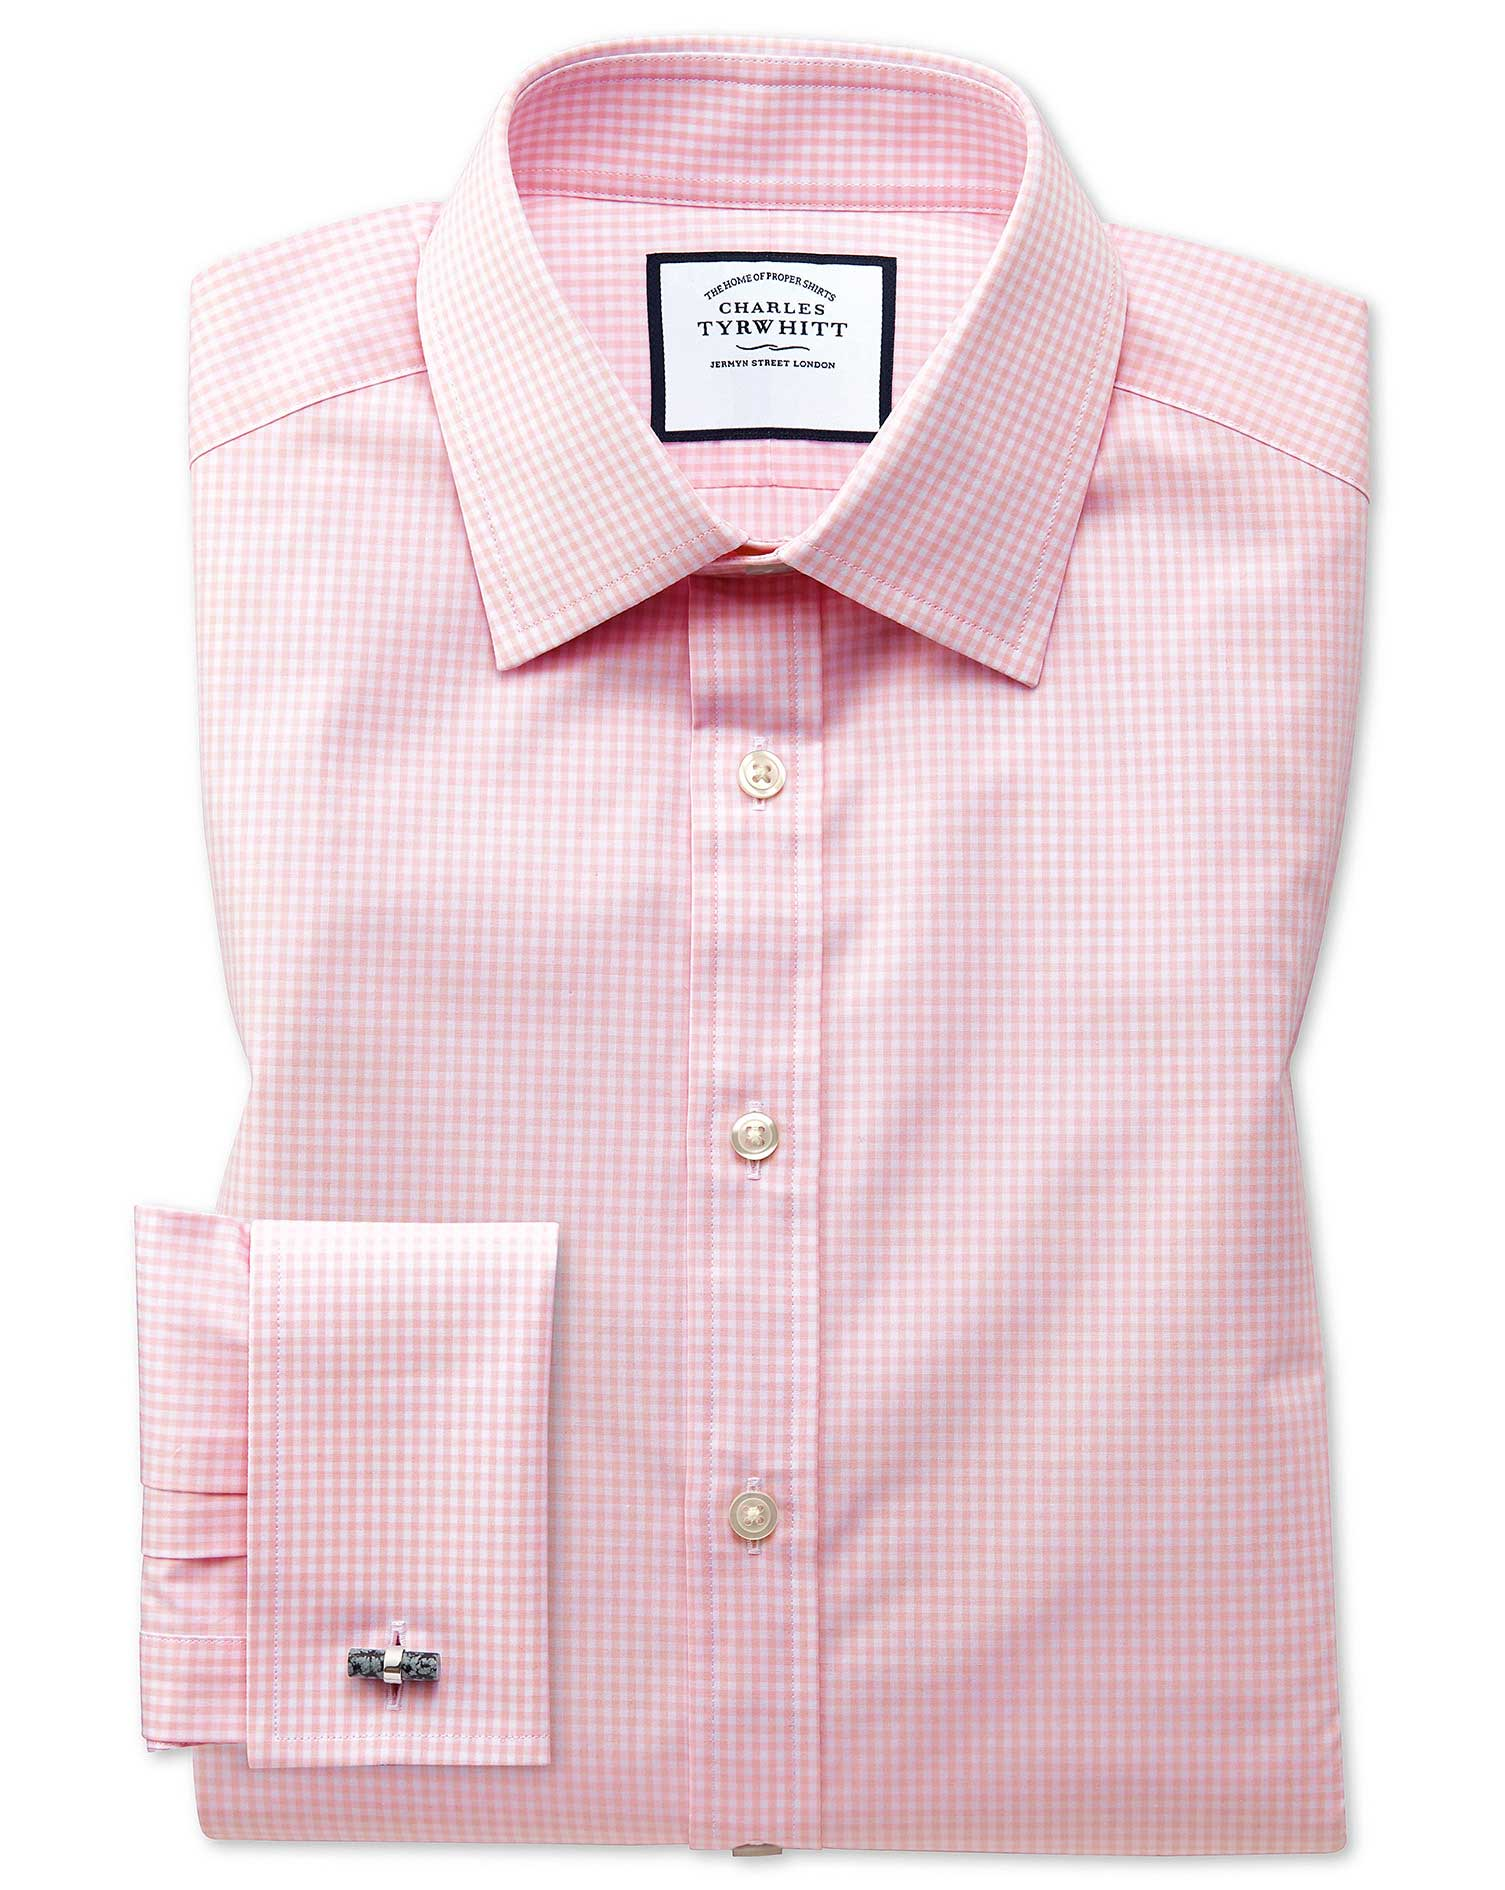 Classic Fit Small Gingham Light Pink Cotton Formal Shirt Single Cuff Size 17/34 by Charles Tyrwhitt